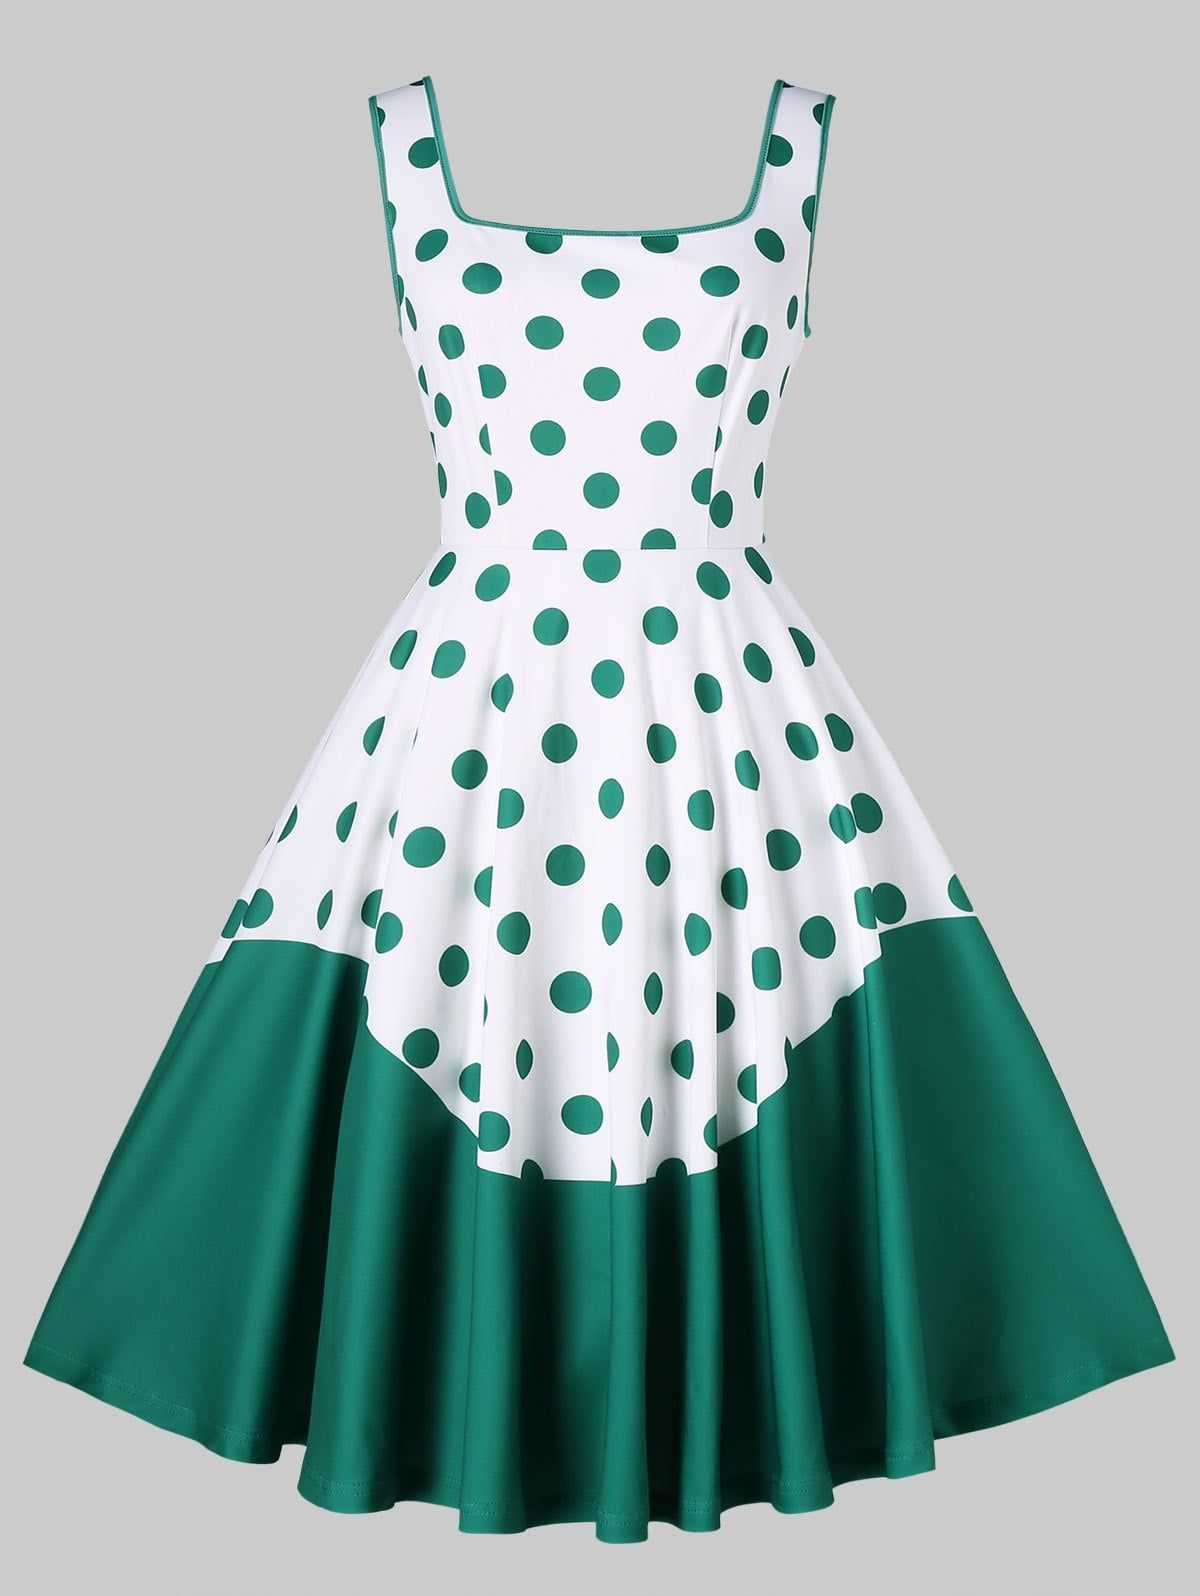 effed78d4e0e1 Polka Dot Printed Sleeveless Retro Dress in 2019 | Hi | Dresses ...